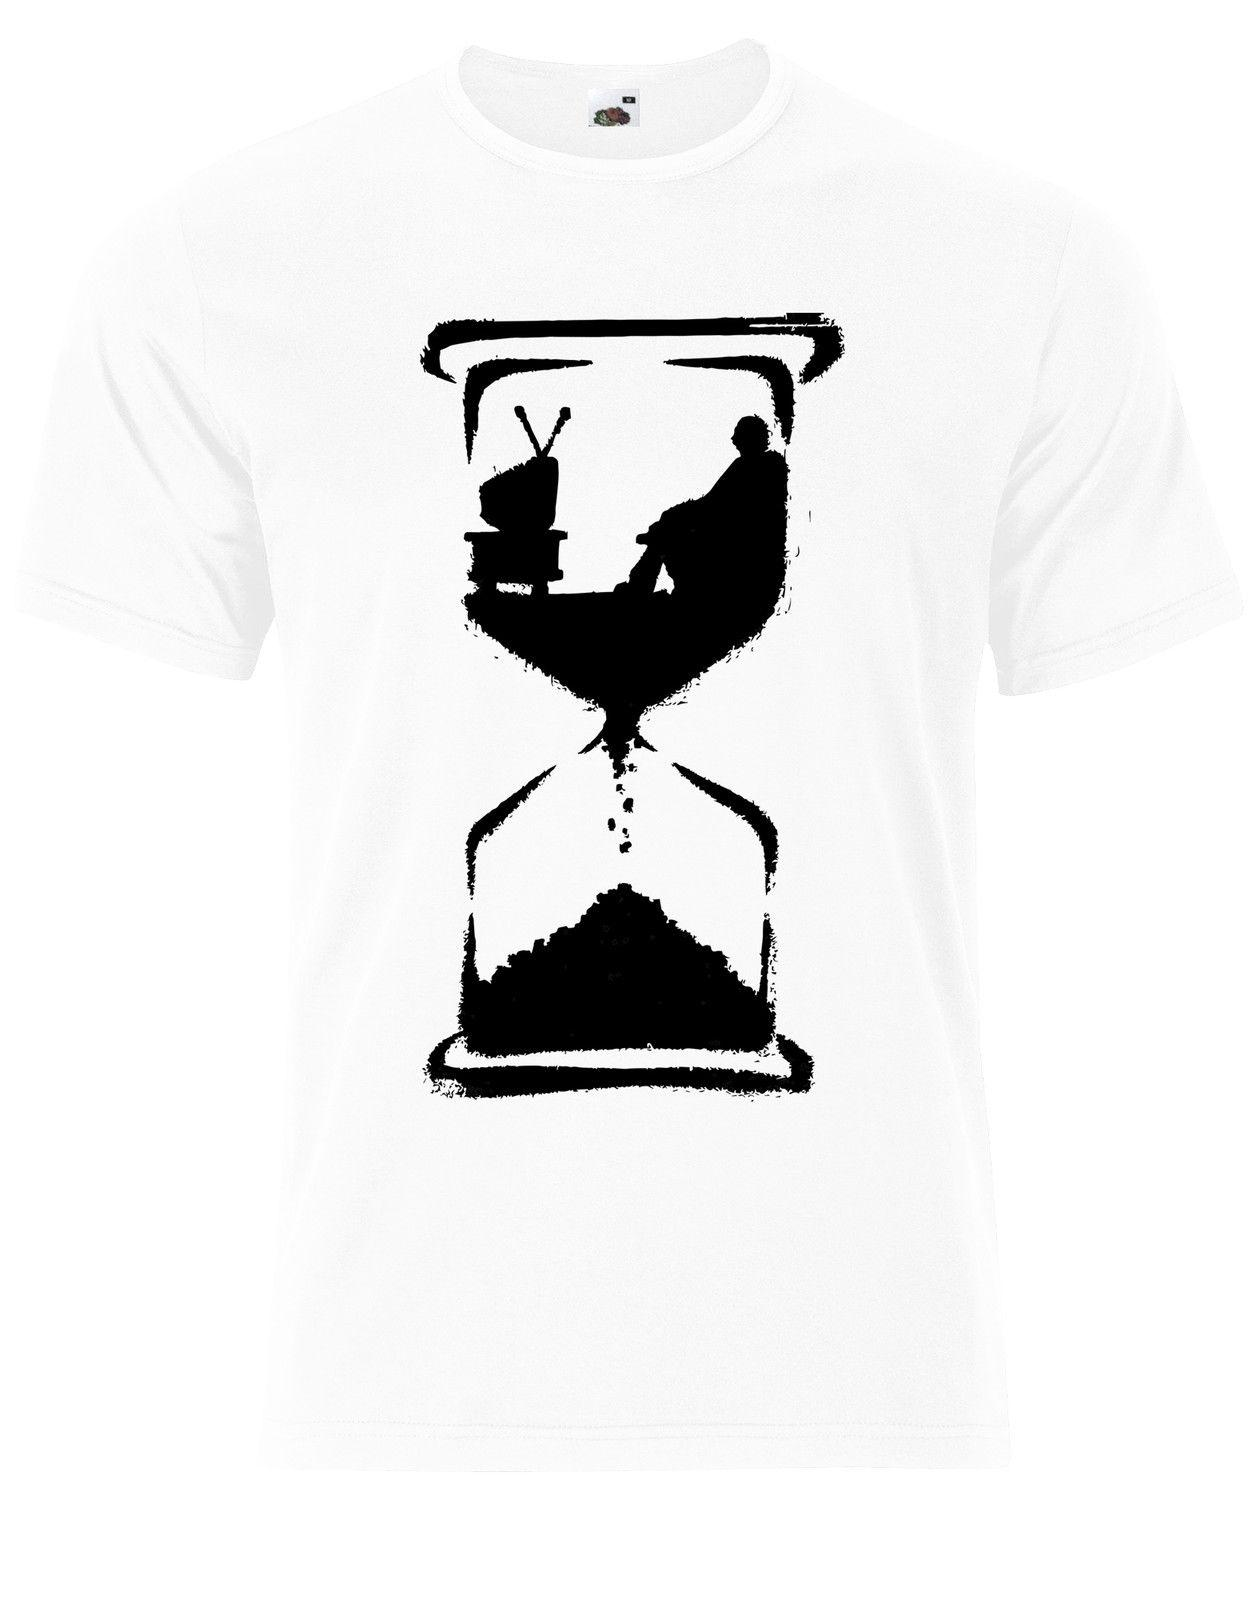 Remarkable Couch Potato Wasting Time Hourglass Street Art Mens Back Tshirt Tee Top Ag77 Caraccident5 Cool Chair Designs And Ideas Caraccident5Info